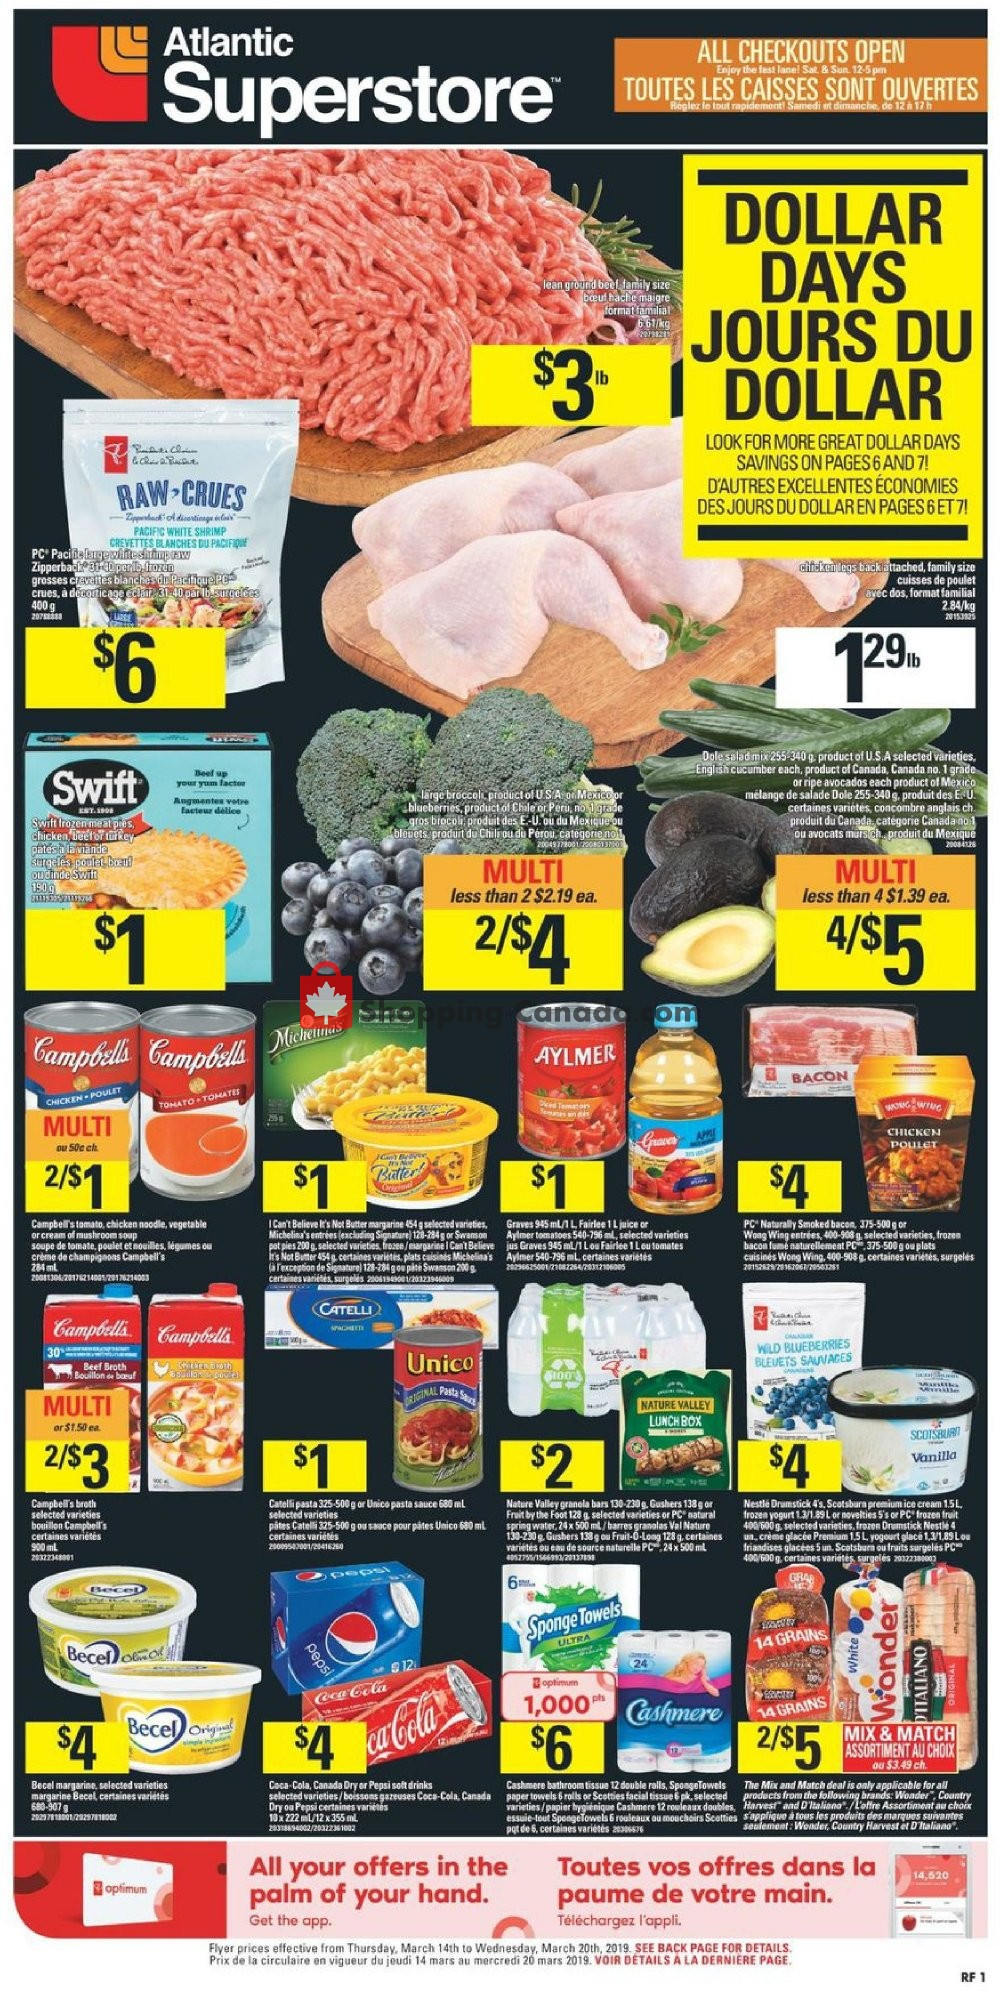 Flyer Atlantic Superstore Canada - from Thursday March 14, 2019 to Wednesday March 20, 2019